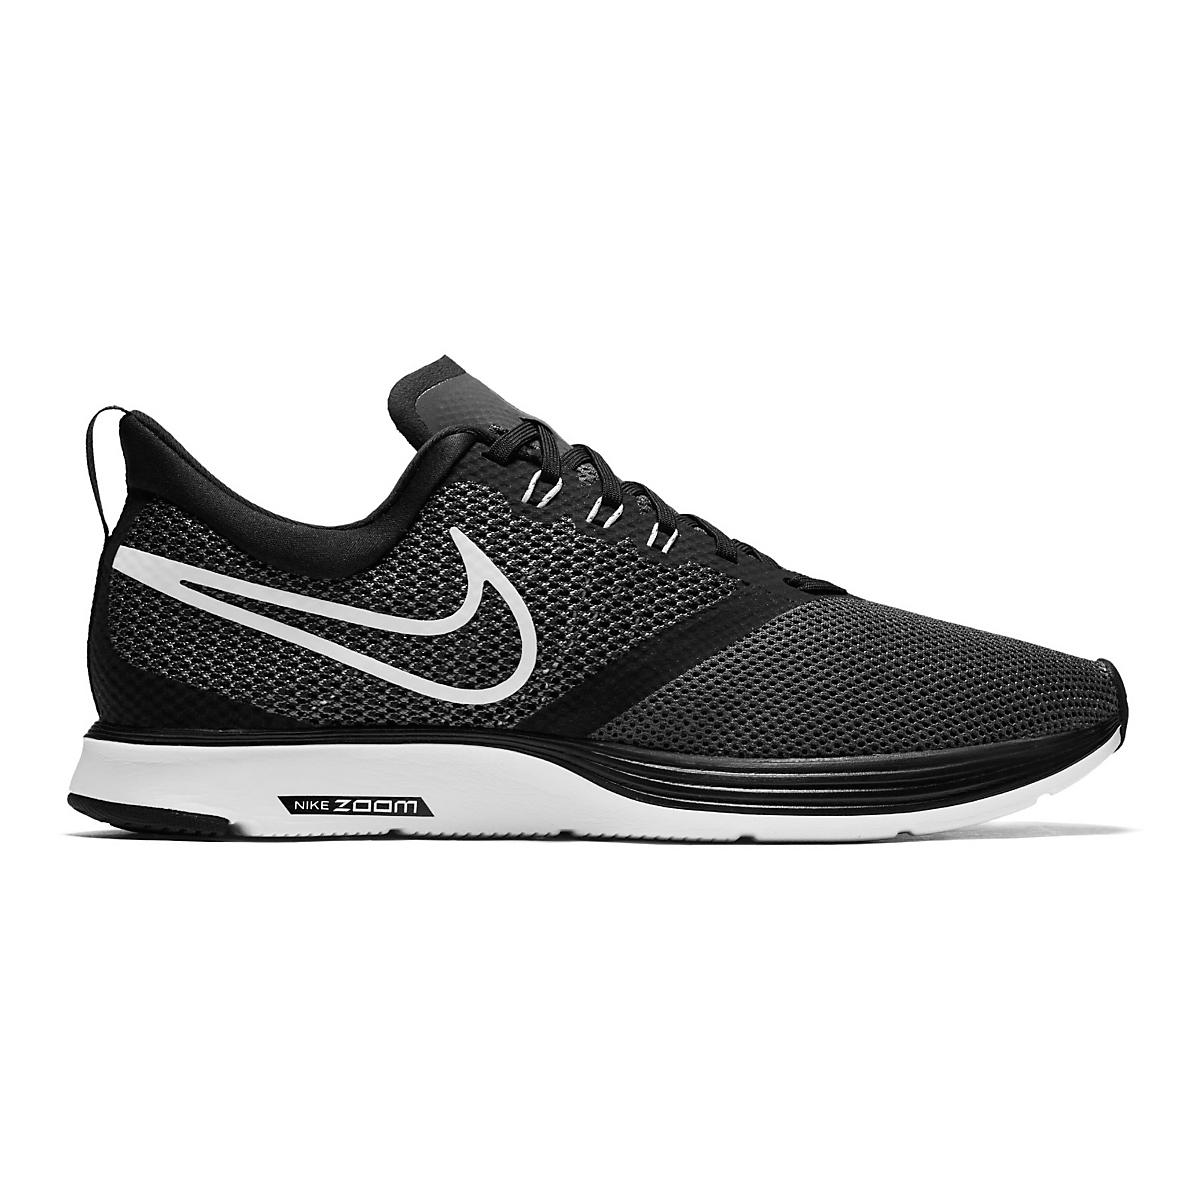 be0a25fa0c19 Mens Nike Zoom Strike Running Shoe at Road Runner Sports